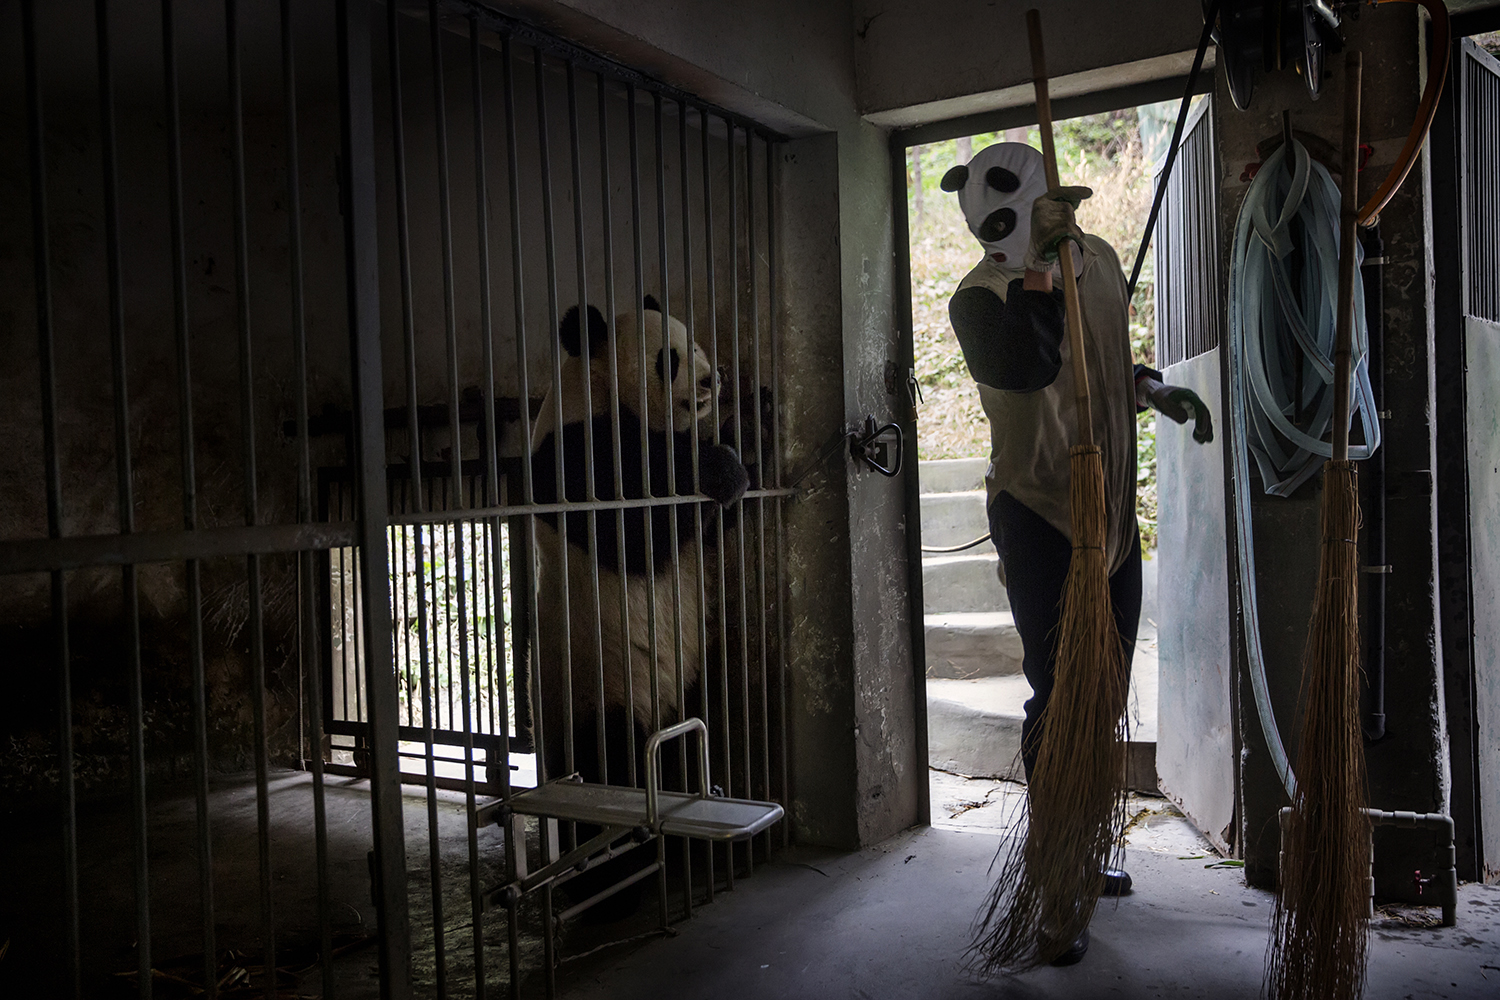 An employee dressed in a panda costume cleans one of the panda enclosures,  Dec. 1, 2015.